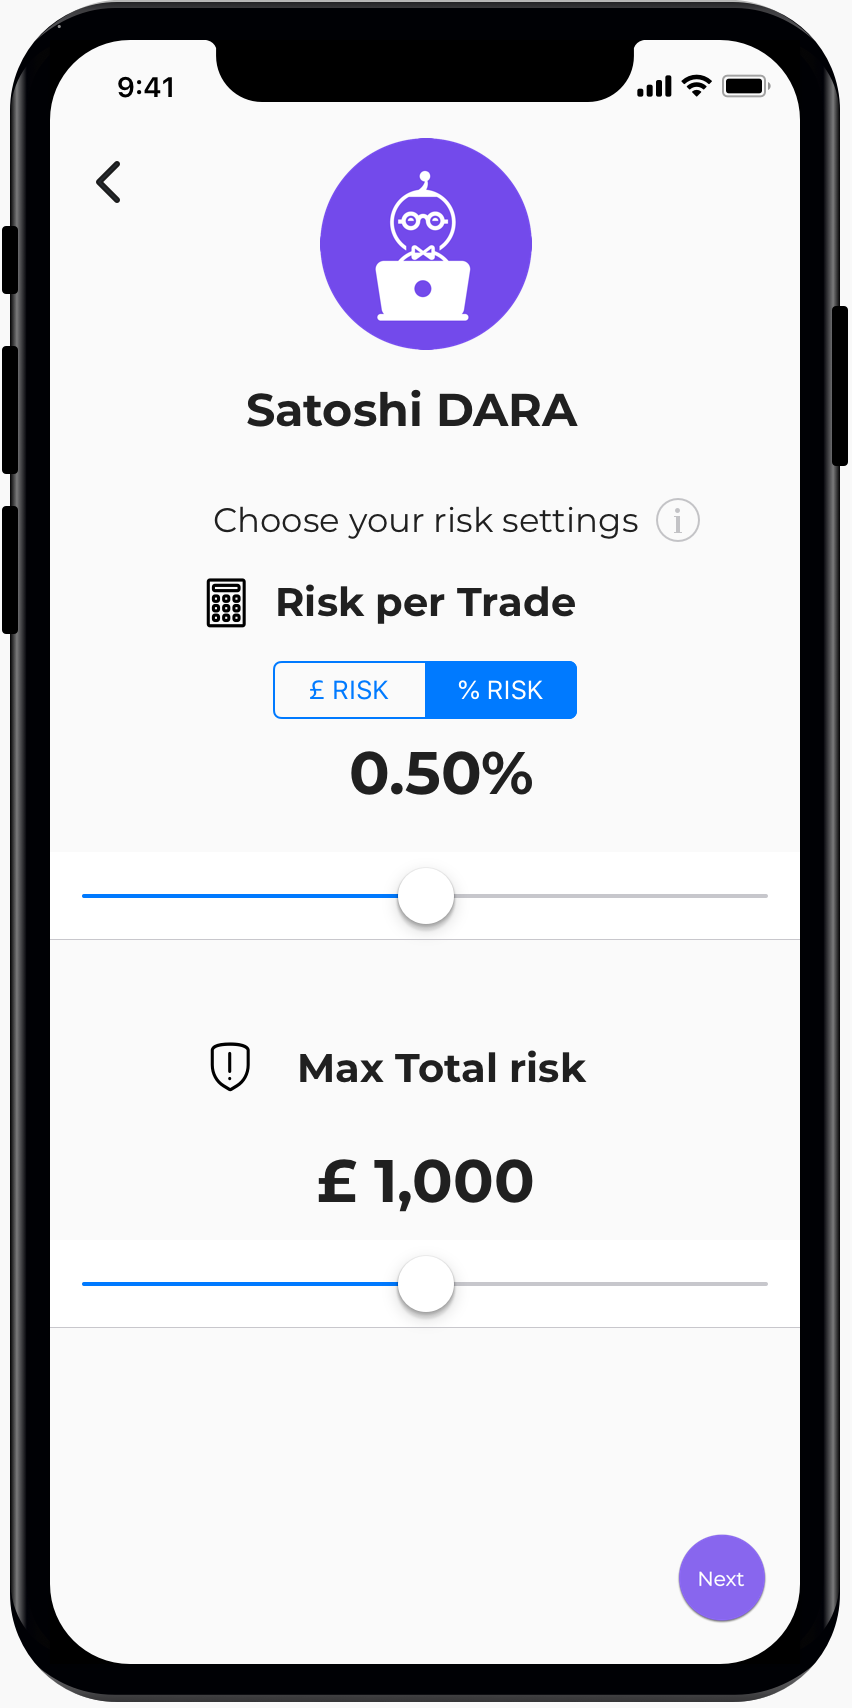 Select your risk level